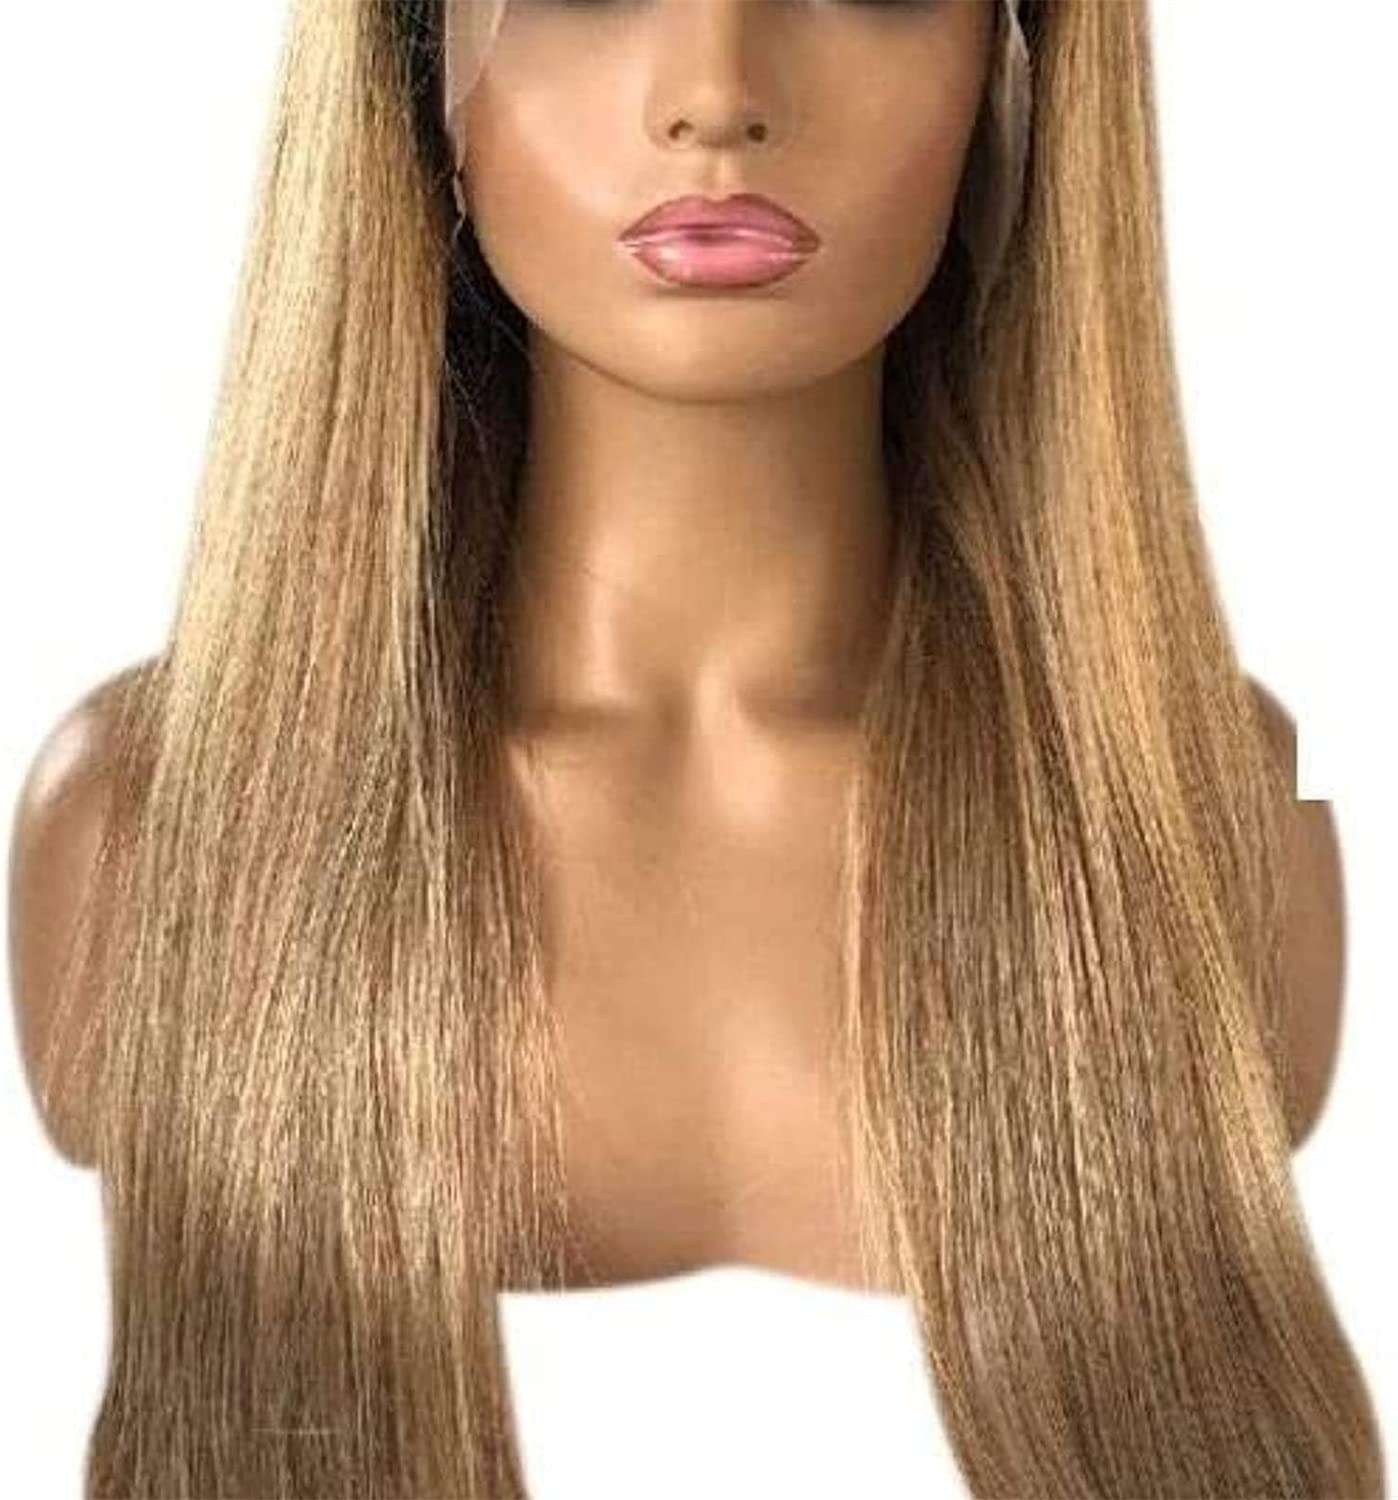 XZGDEN Wigs Hair Max 65% OFF Wig Sales 13 4 Blond Front Lace Human Natur